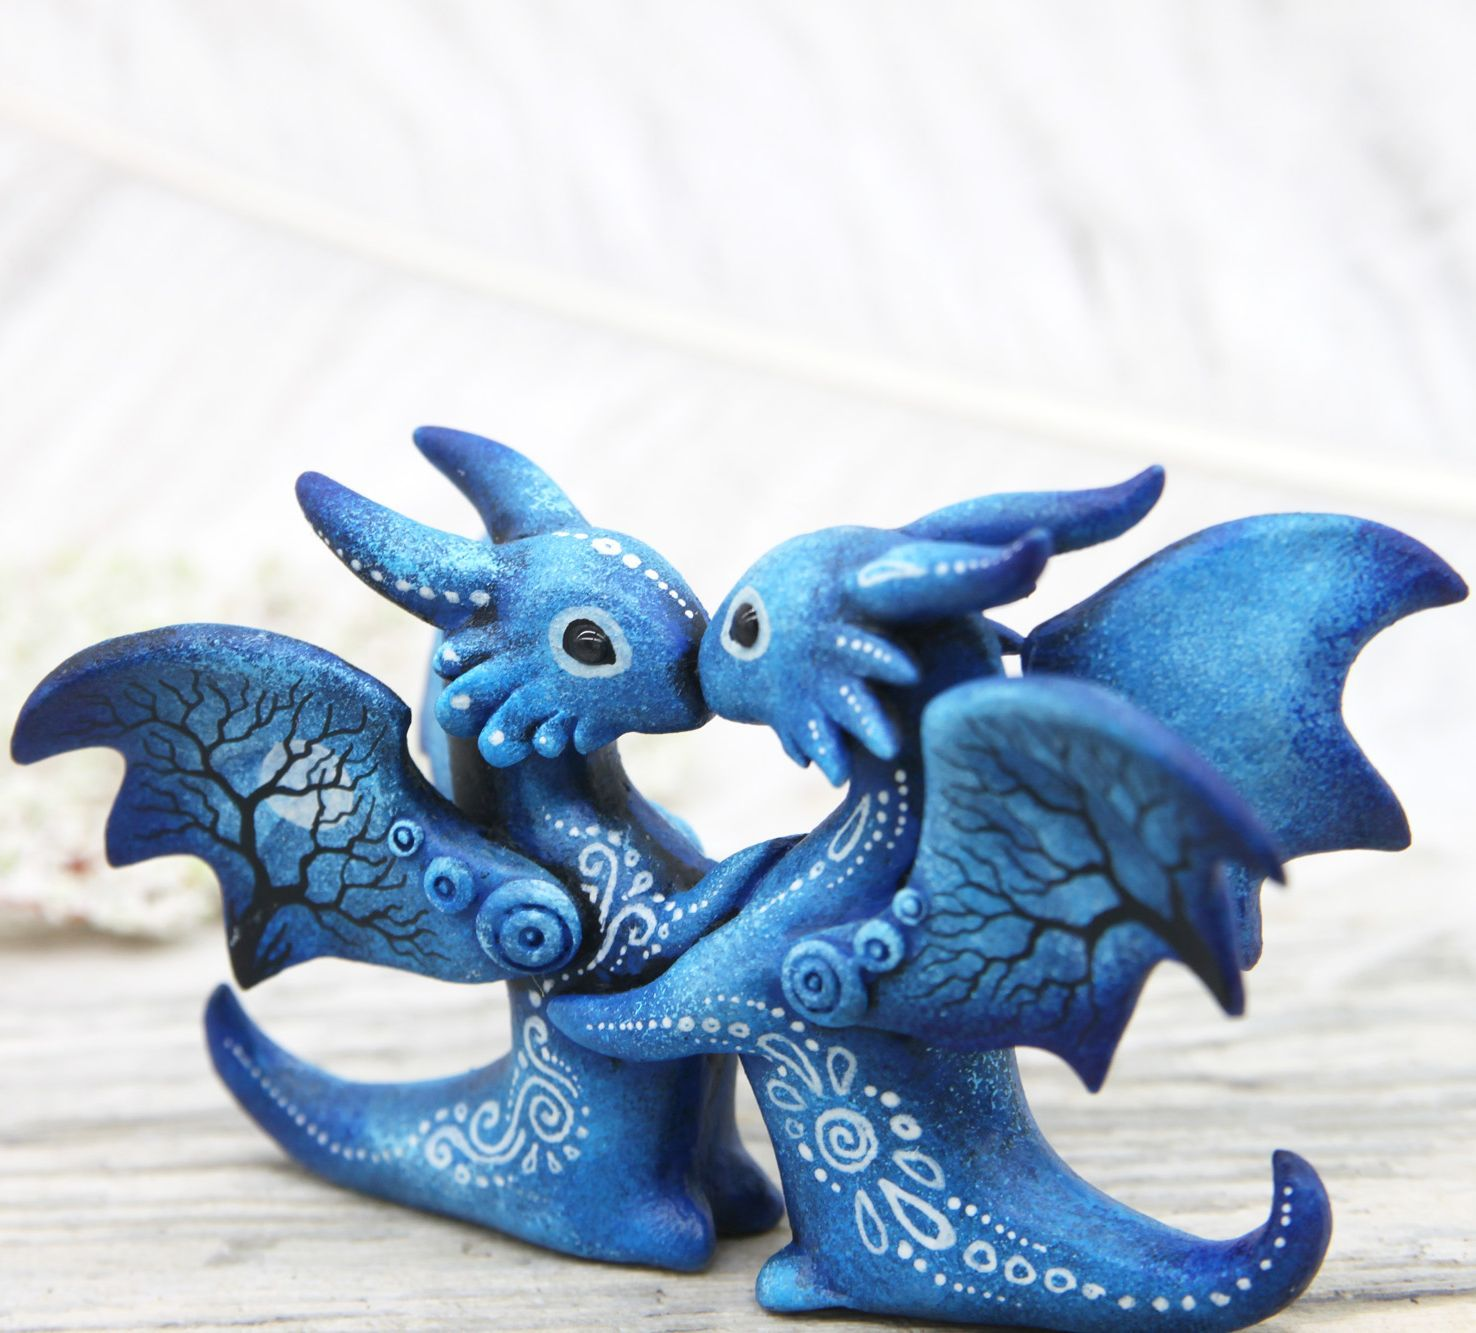 Wedding Cake Topper Couple Dragons Love Figurine By Evgeny Hontor Dragon Sculpture Clay Dragon Sculpture Clay